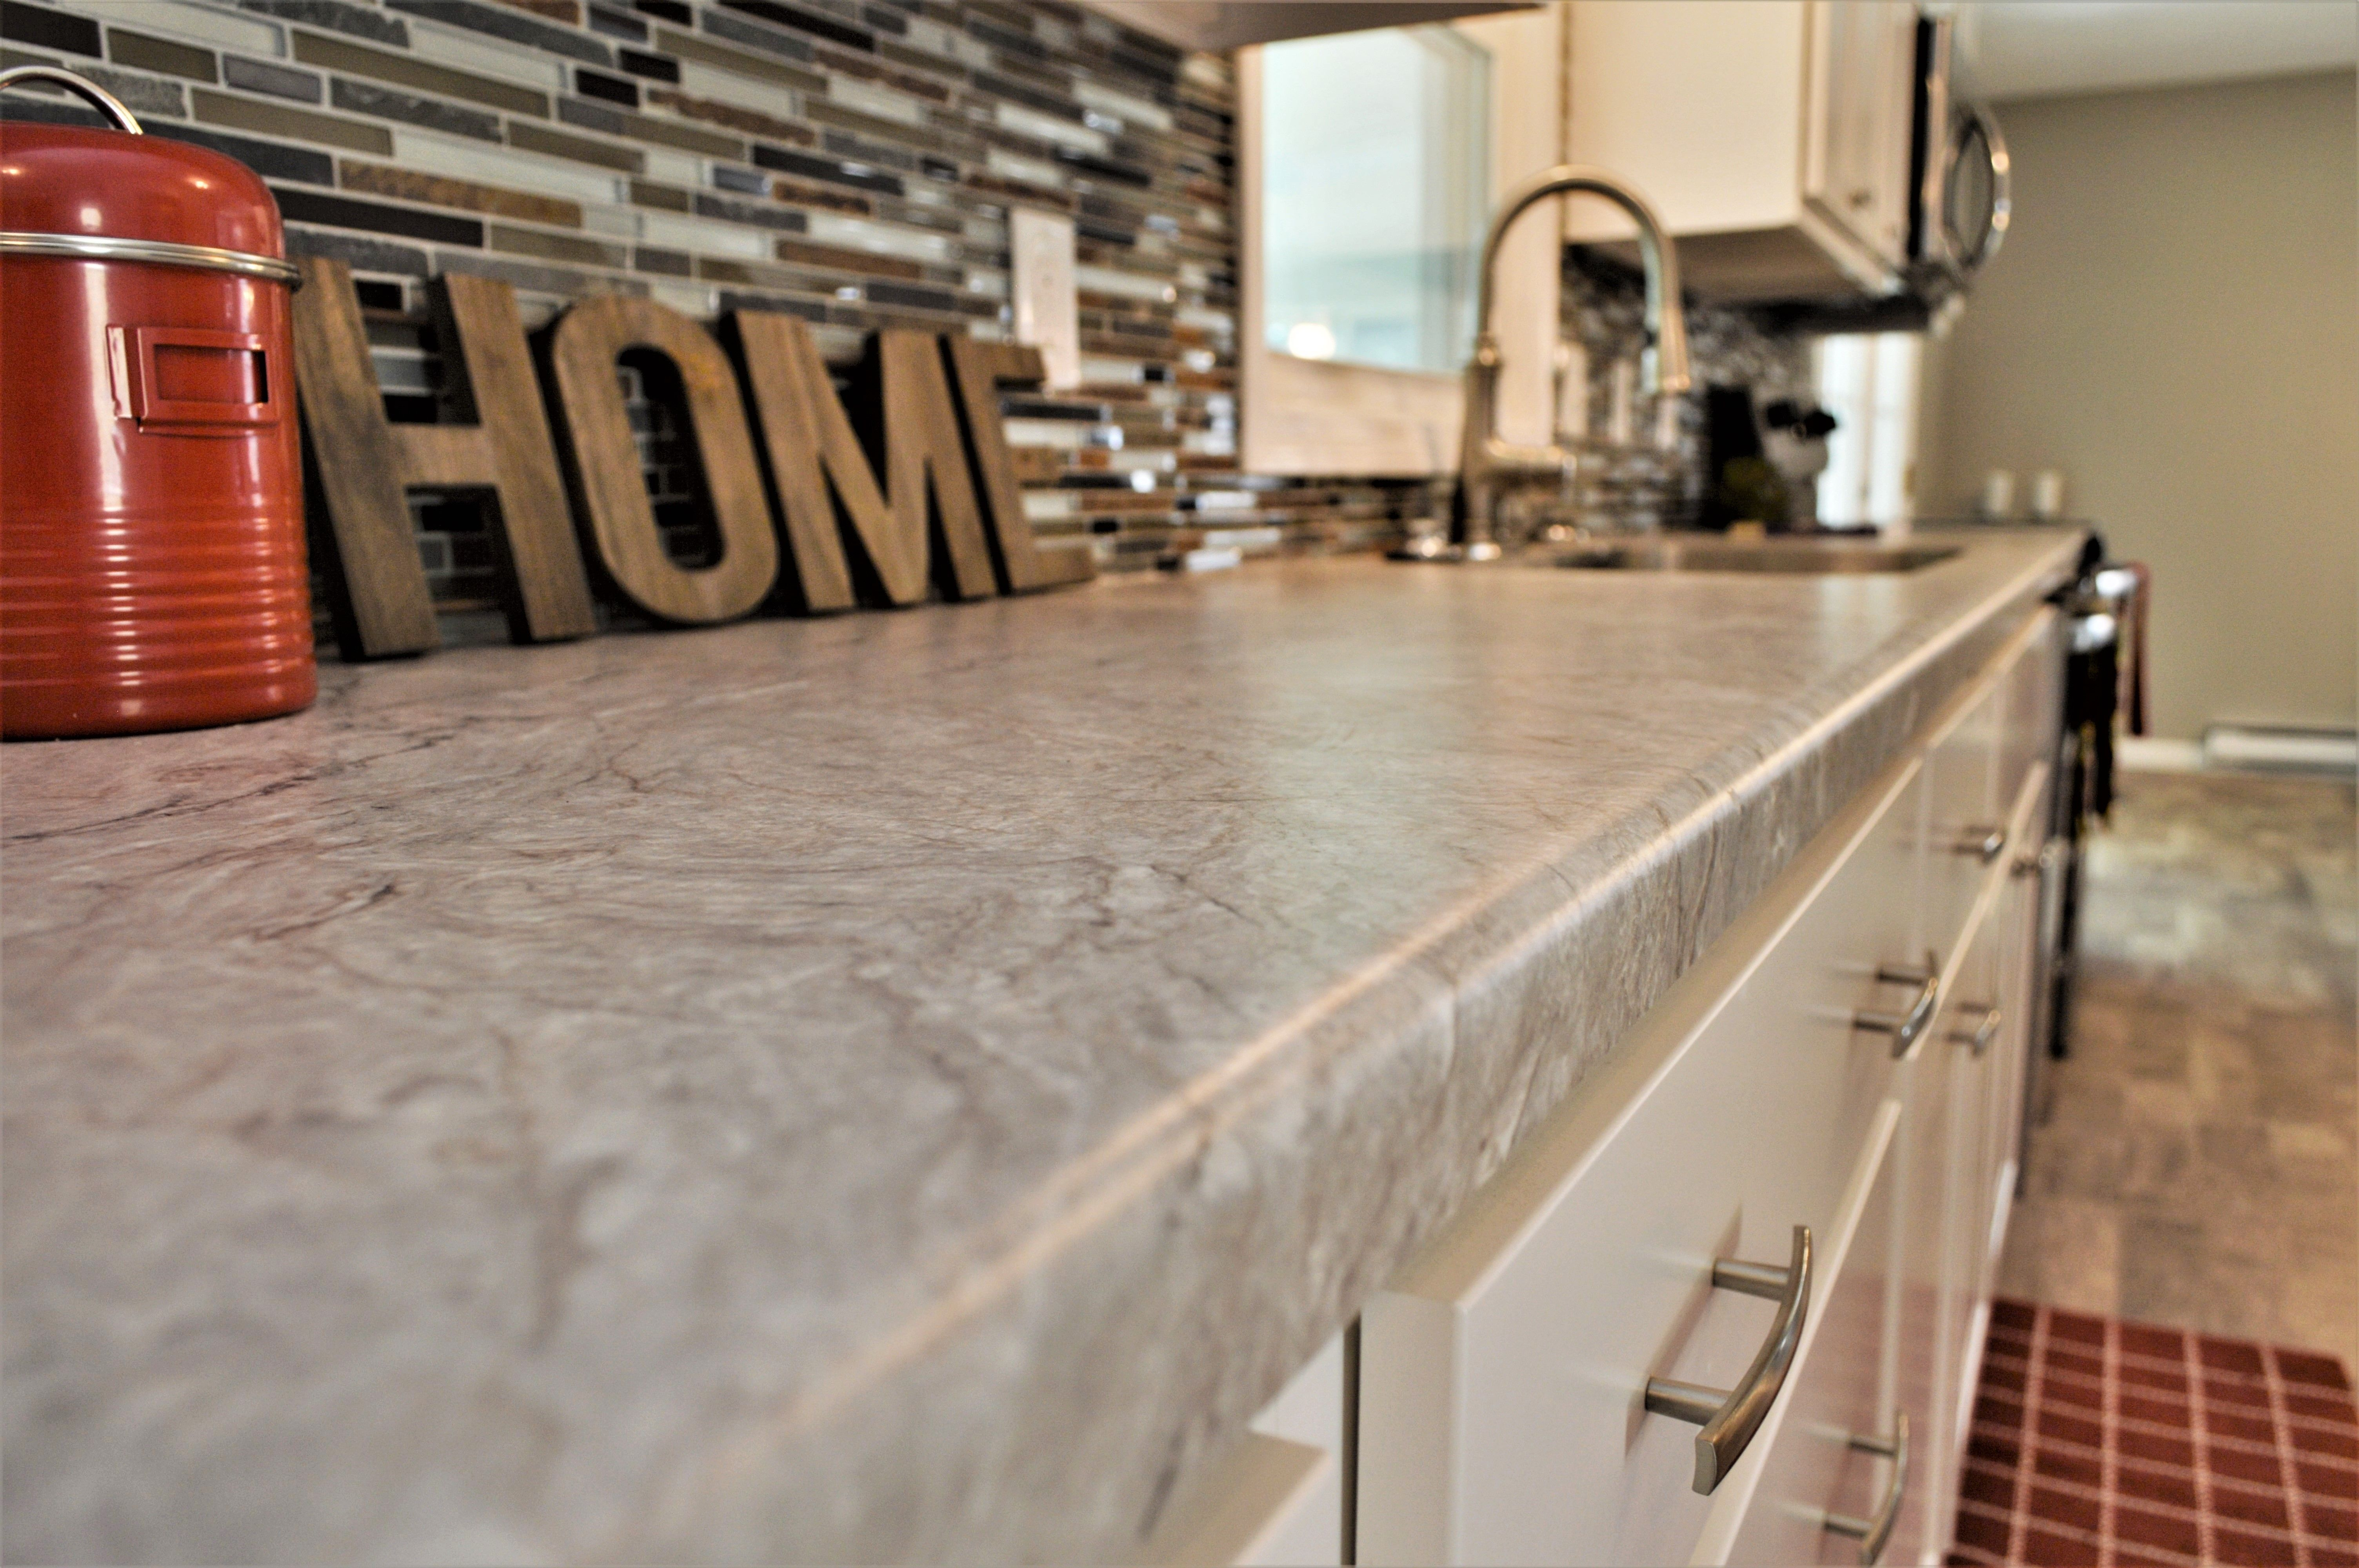 Laminate Countertop Modern Edge Detail Silver Quartzite Color Laminate Countertops Countertops Laminate